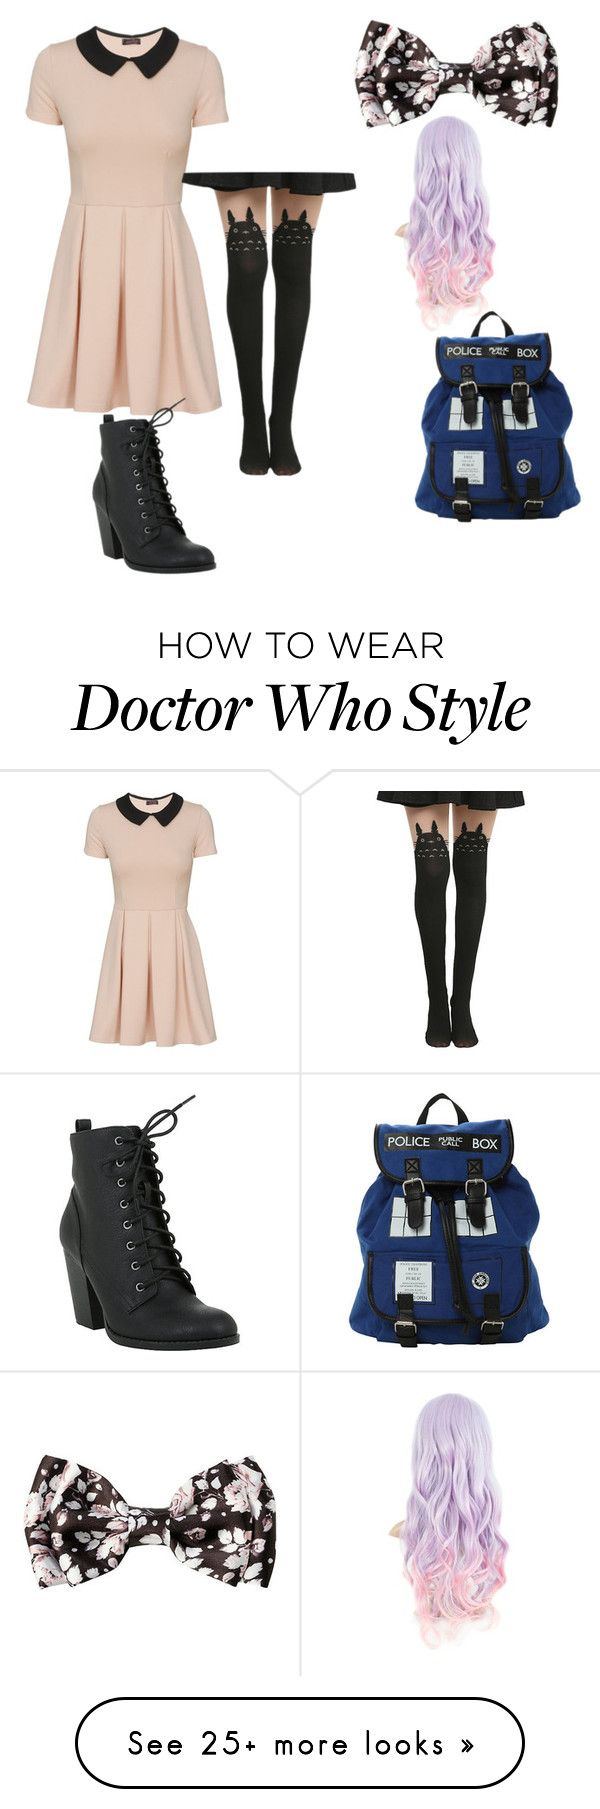 """Untitled #3"" by bandsformybae on Polyvore featuring Ghibli"